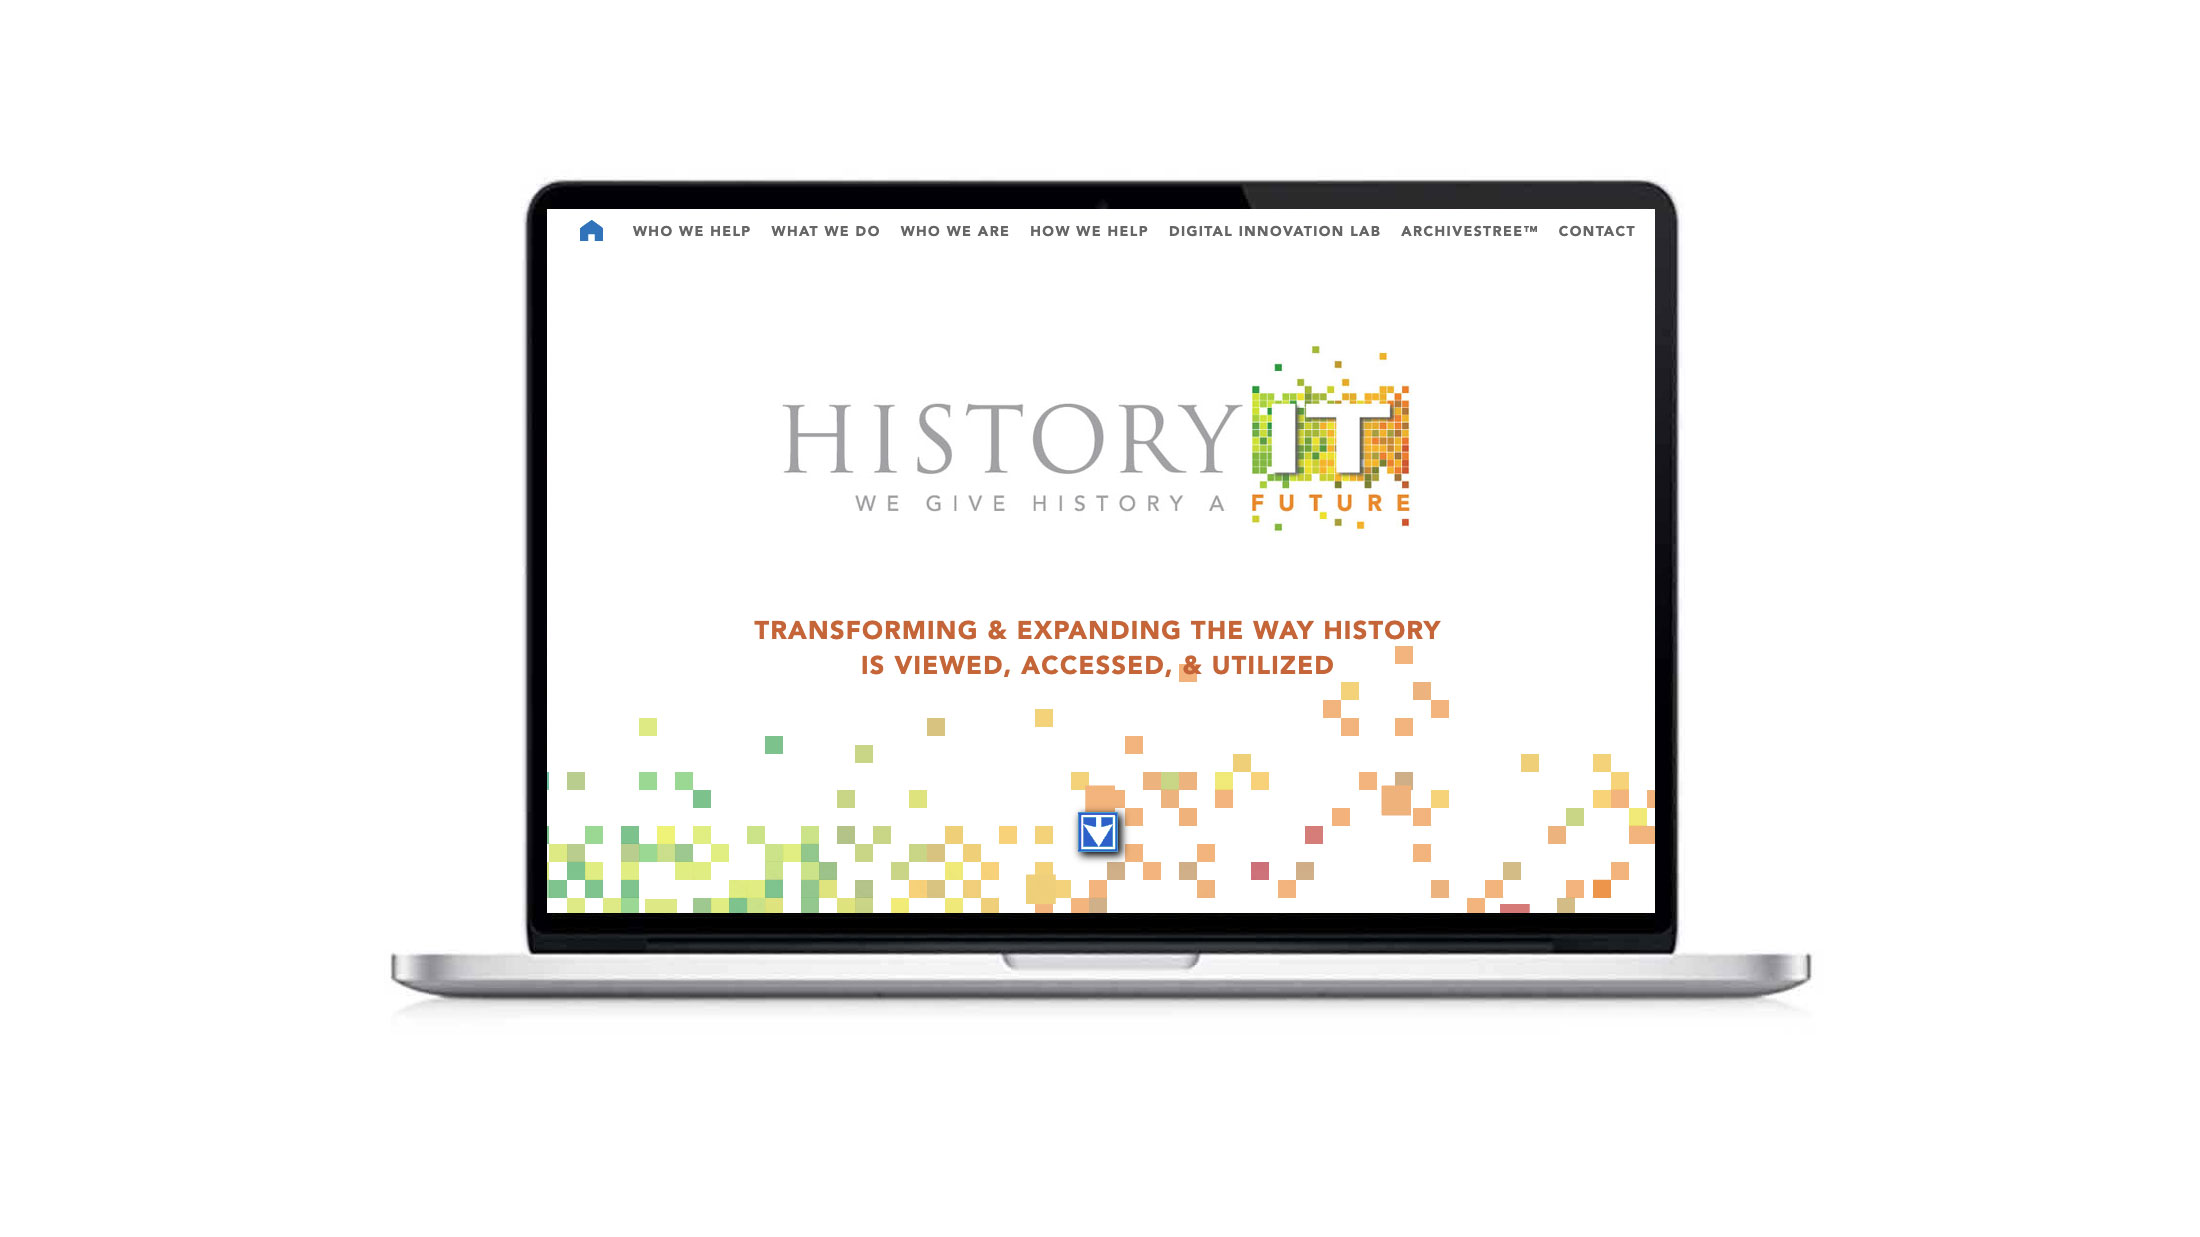 Website for a historical archiving company